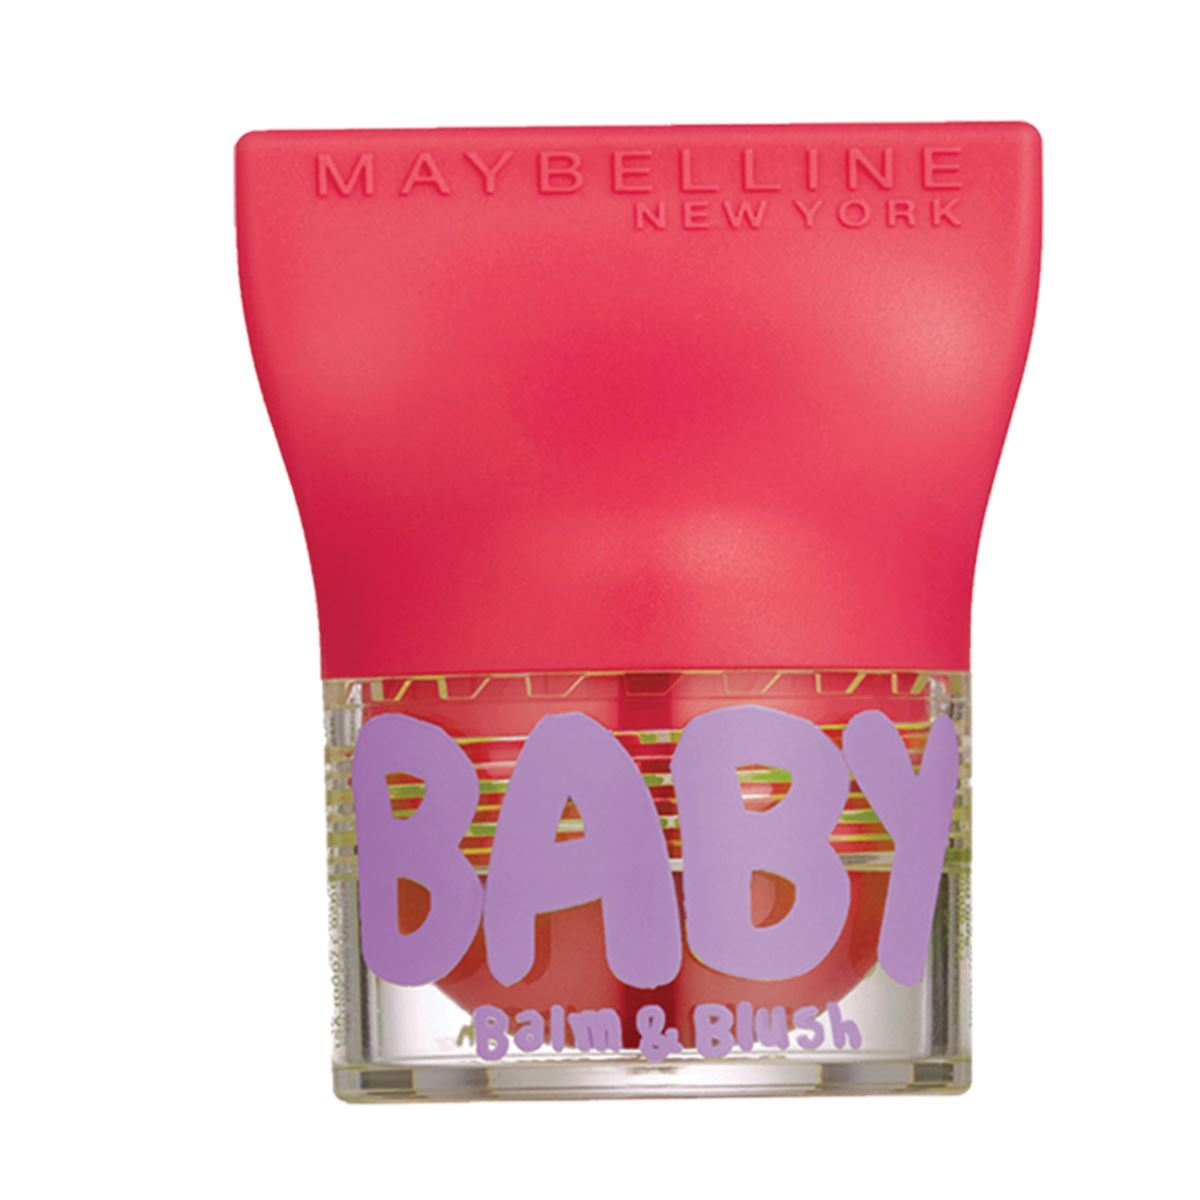 Babylips lip-cheek nu 3 juicy rose maybelline ny  - Sanborns